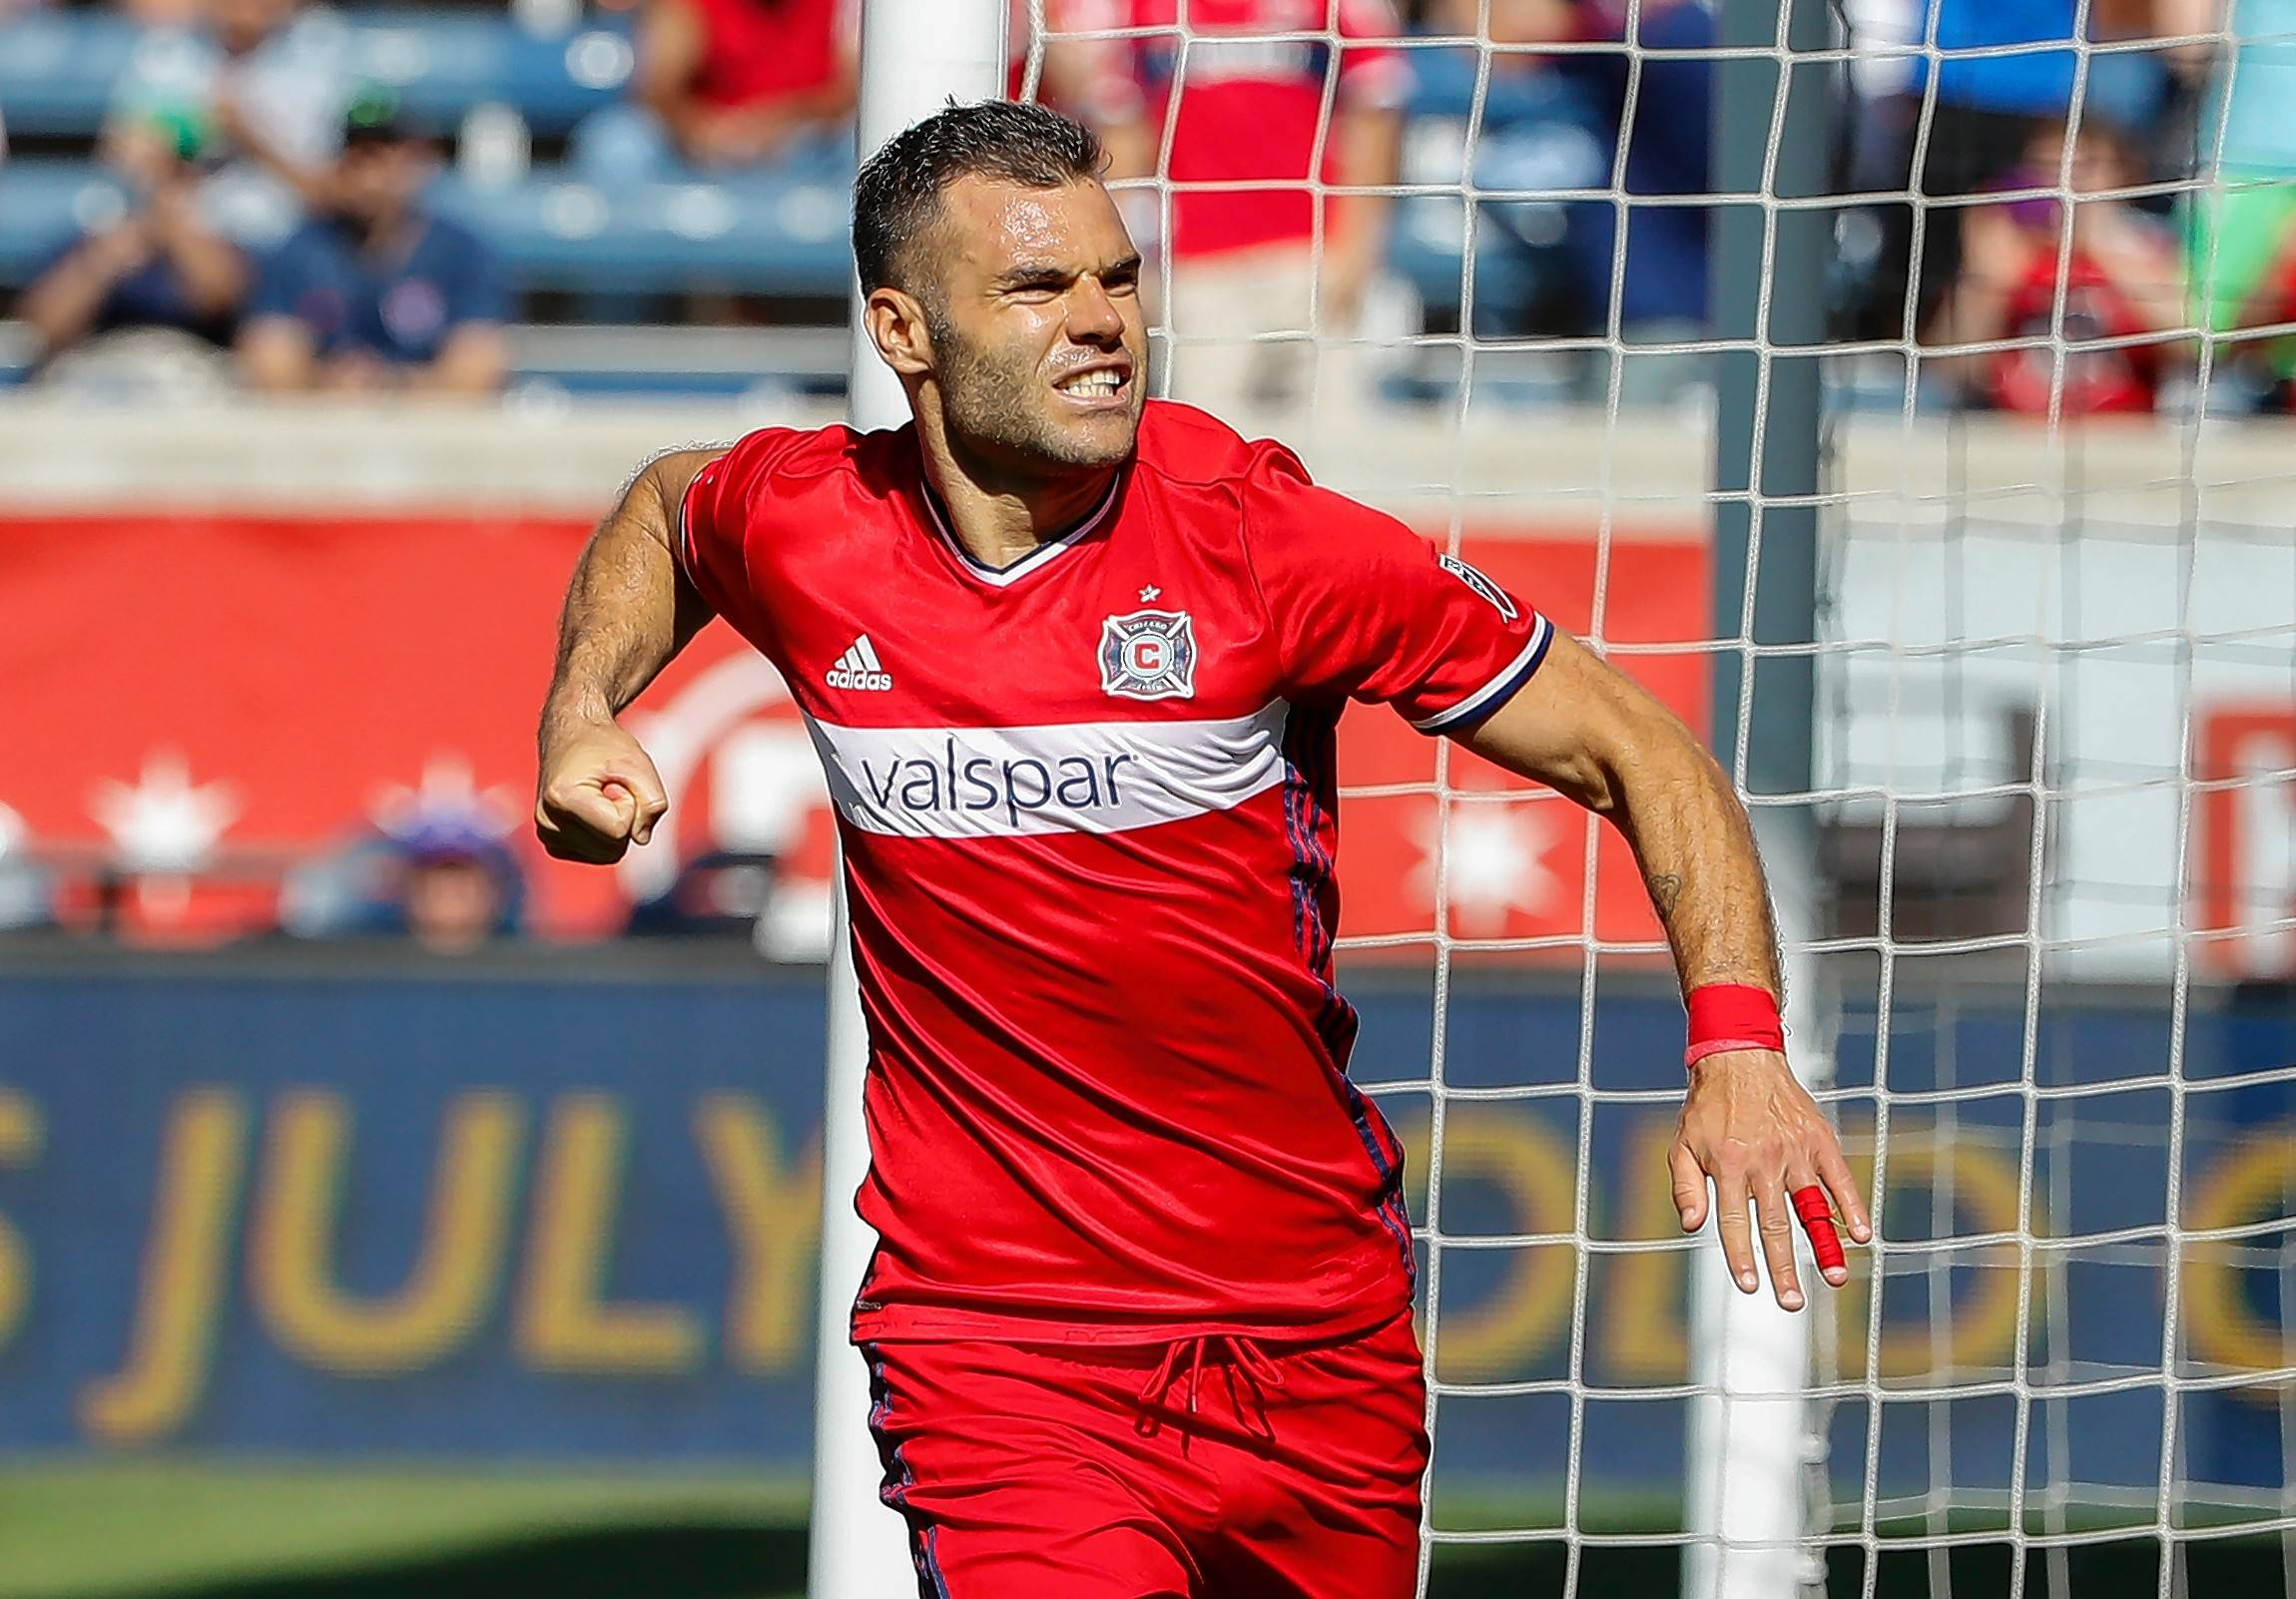 Chicago Fire forward Nemanja Nikolic celebrates after scoring on a penalty kick against Atlanta United goalkeeper Alec Kann during the second half of an MLS soccer match, Saturday, June 10, 2017, in Bridgeview, Ill. (AP Photo/Kamil Krzaczynski)